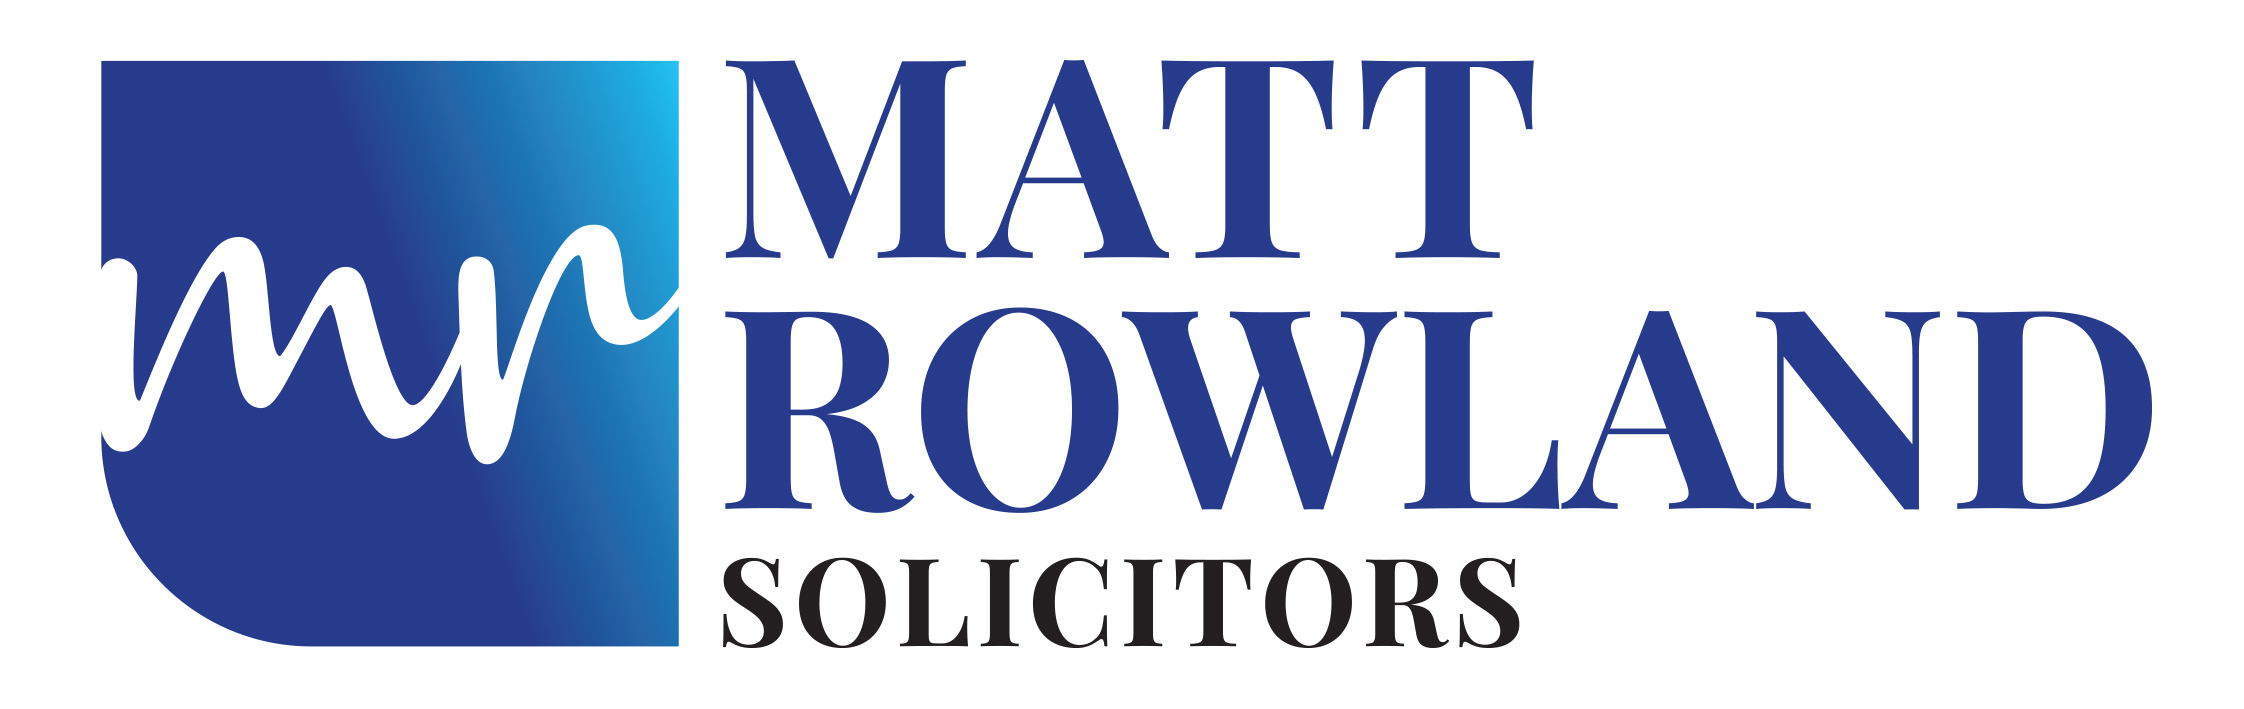 Matt Rowland Solicitors